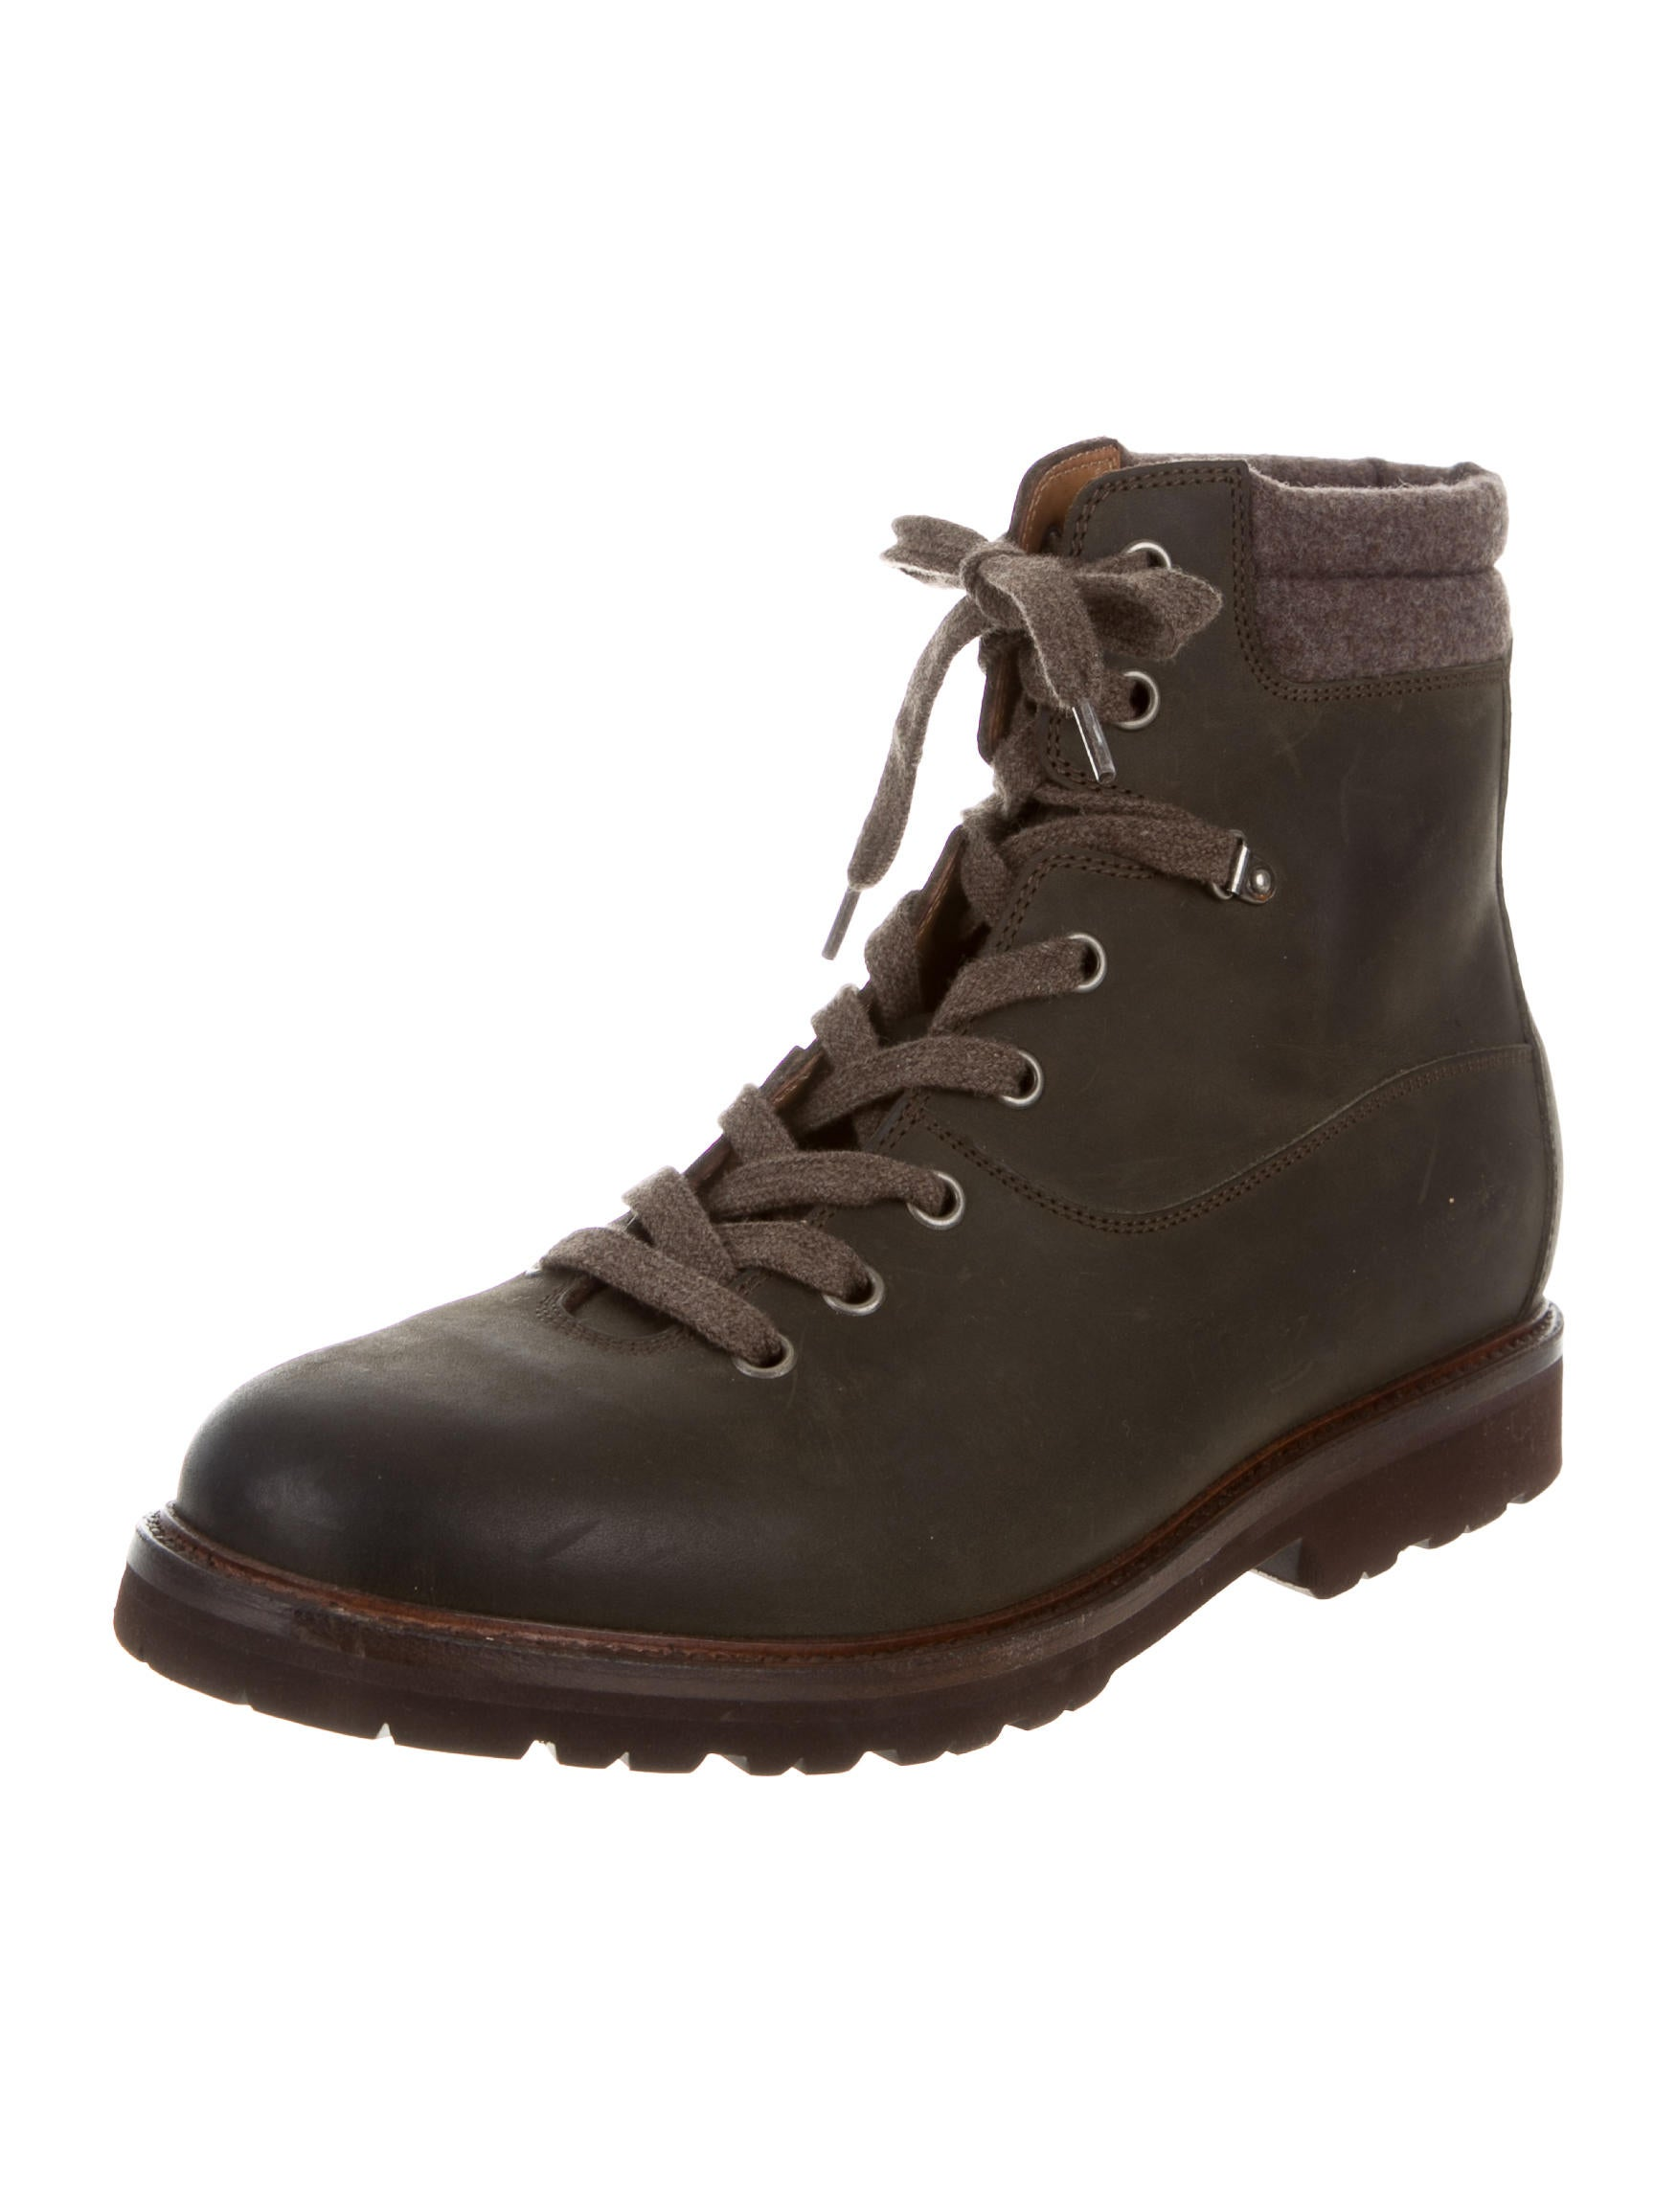 brunello cucinelli leather hiking boots shoes bru42885